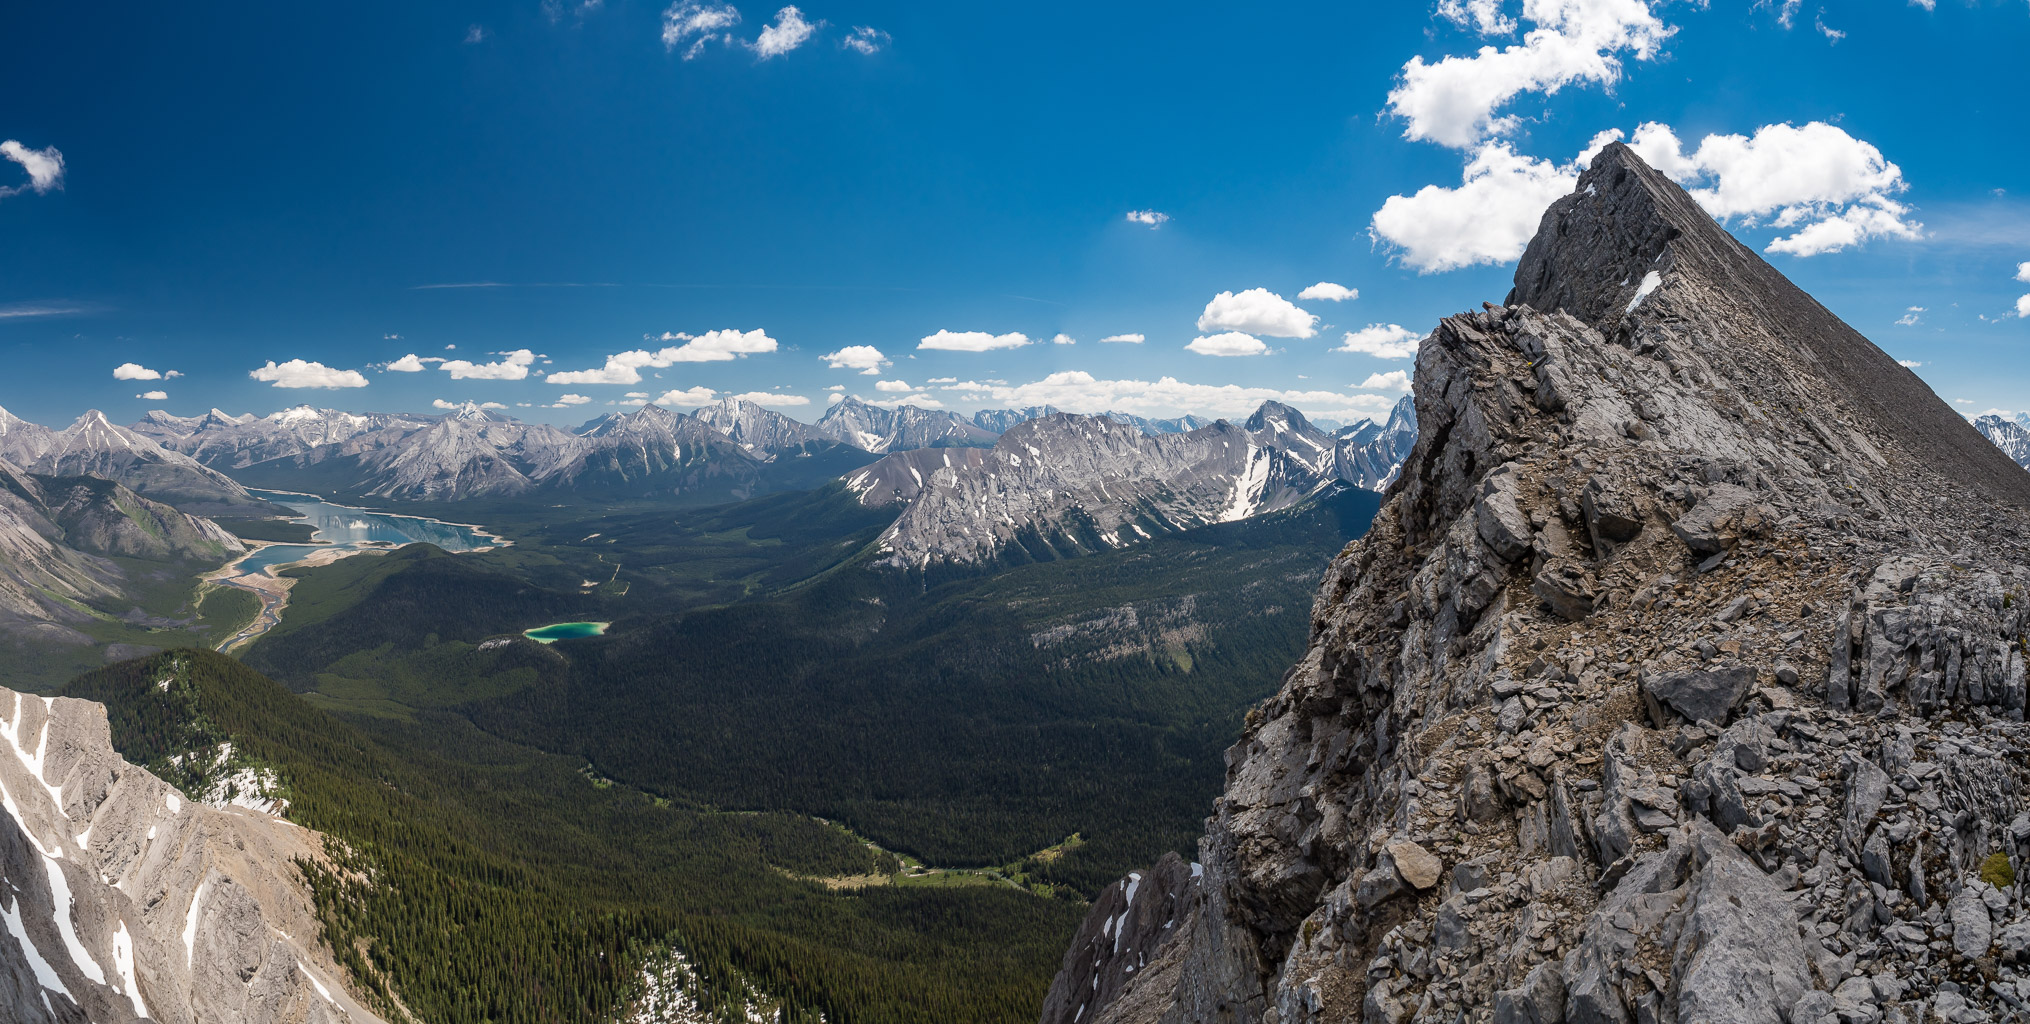 Looking back at the summit of Morrison - the ridge is pretty intimidating!